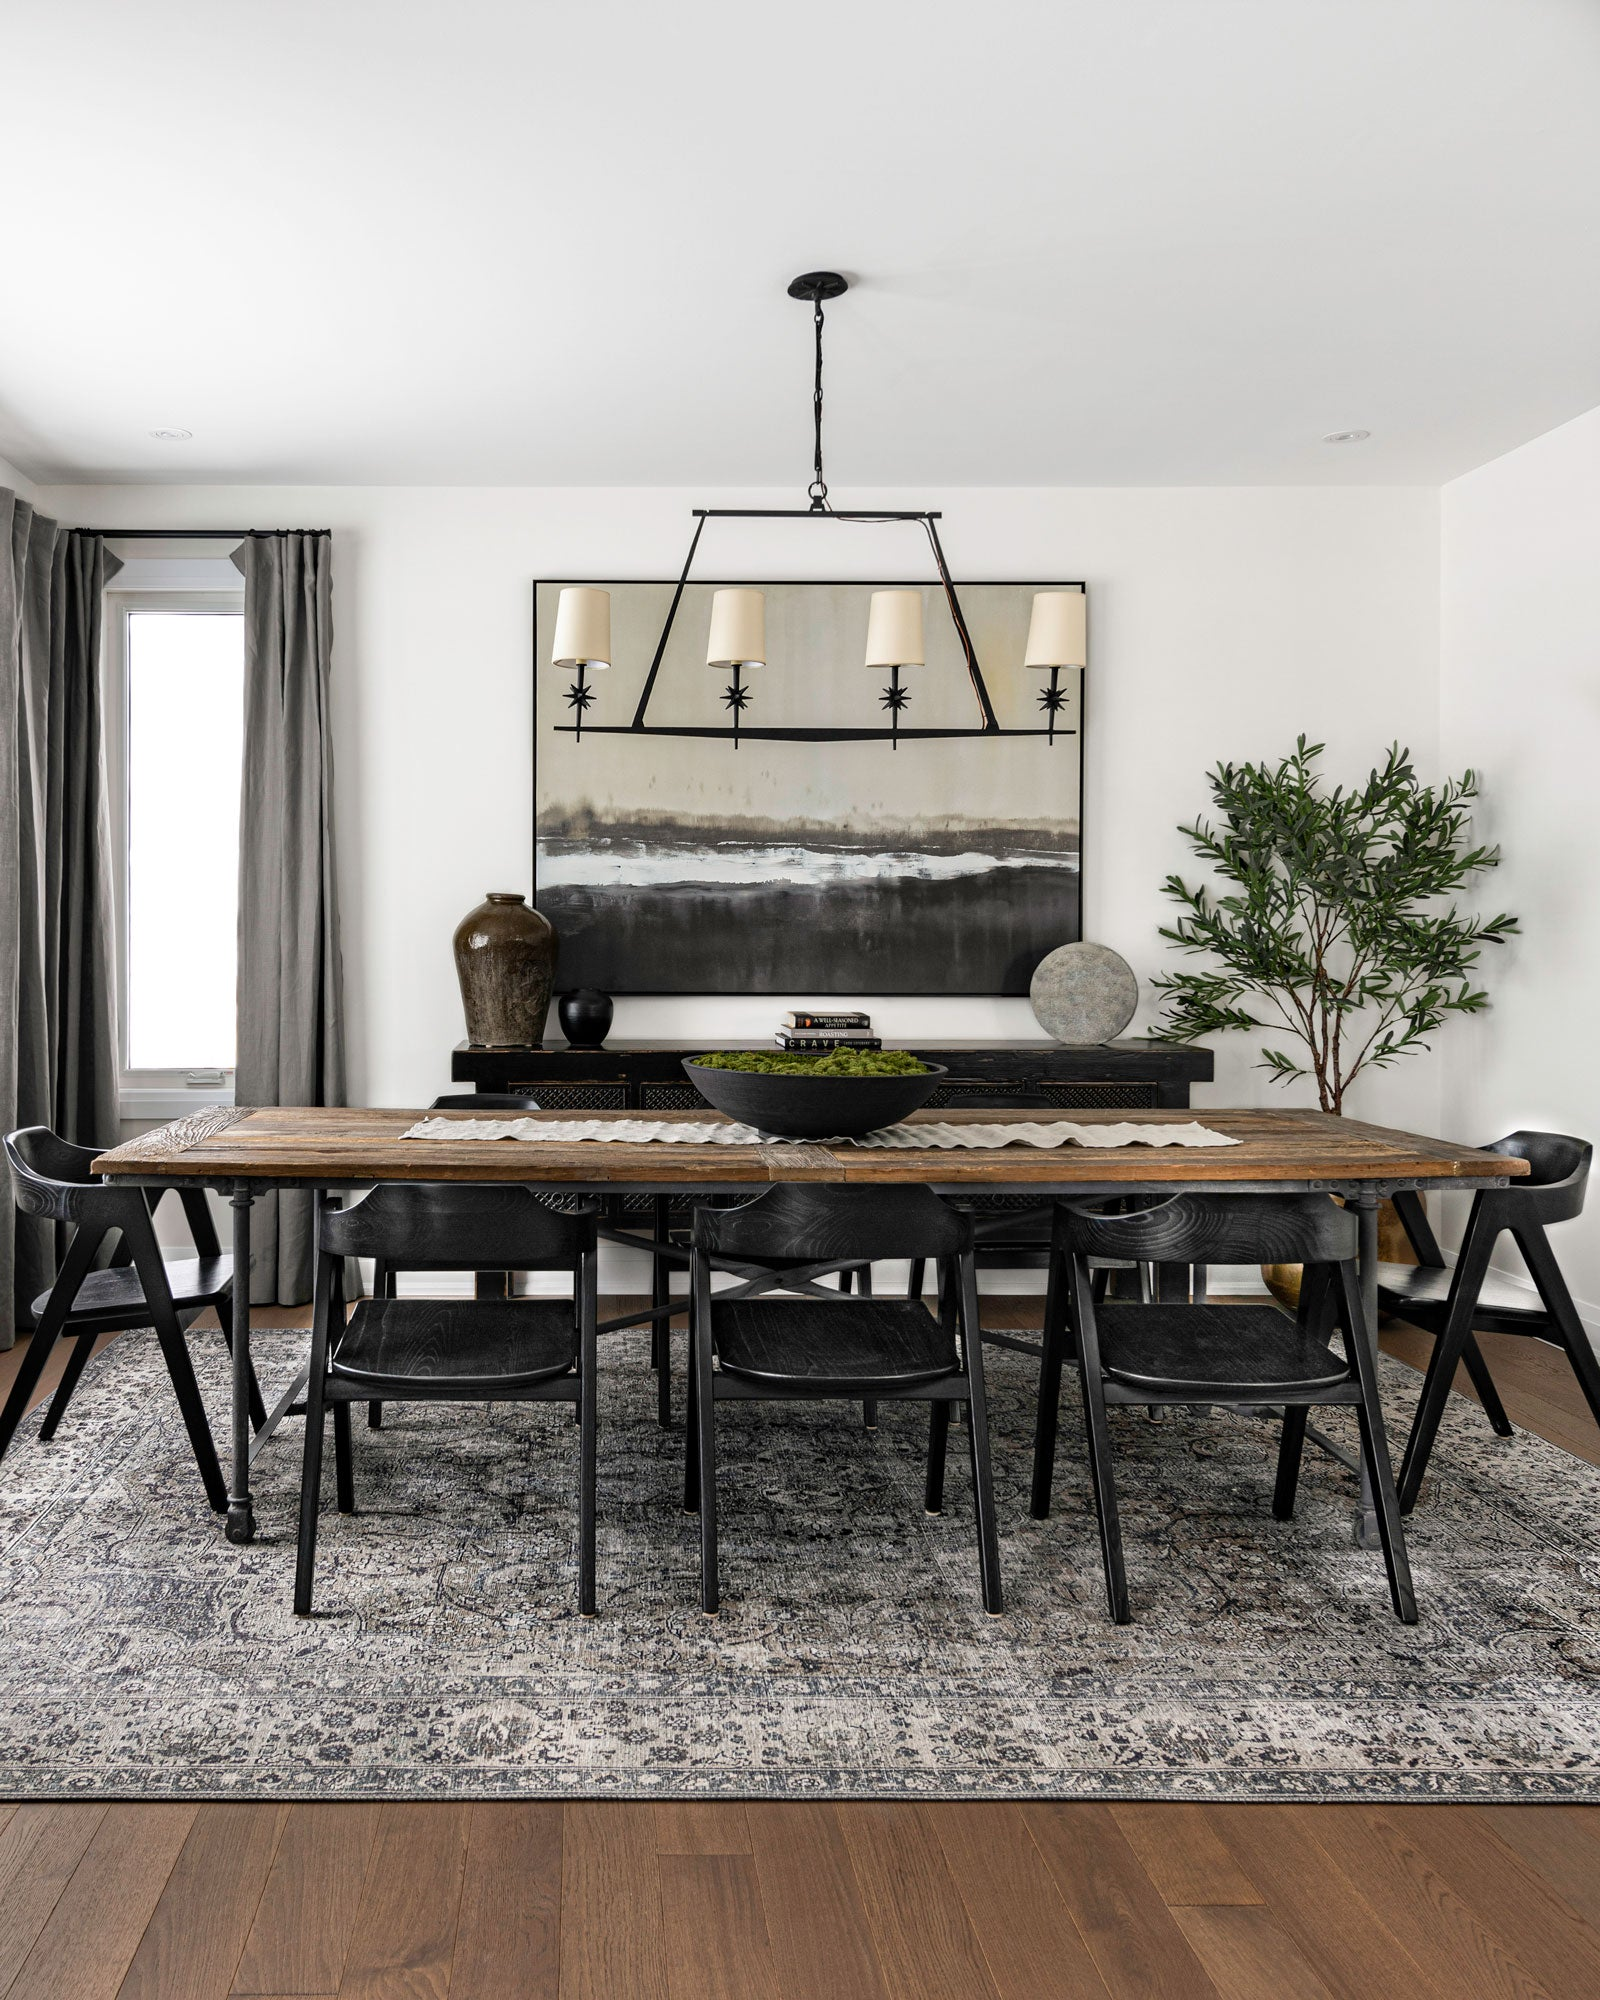 Dining room with large industrial style table and statement chandelier